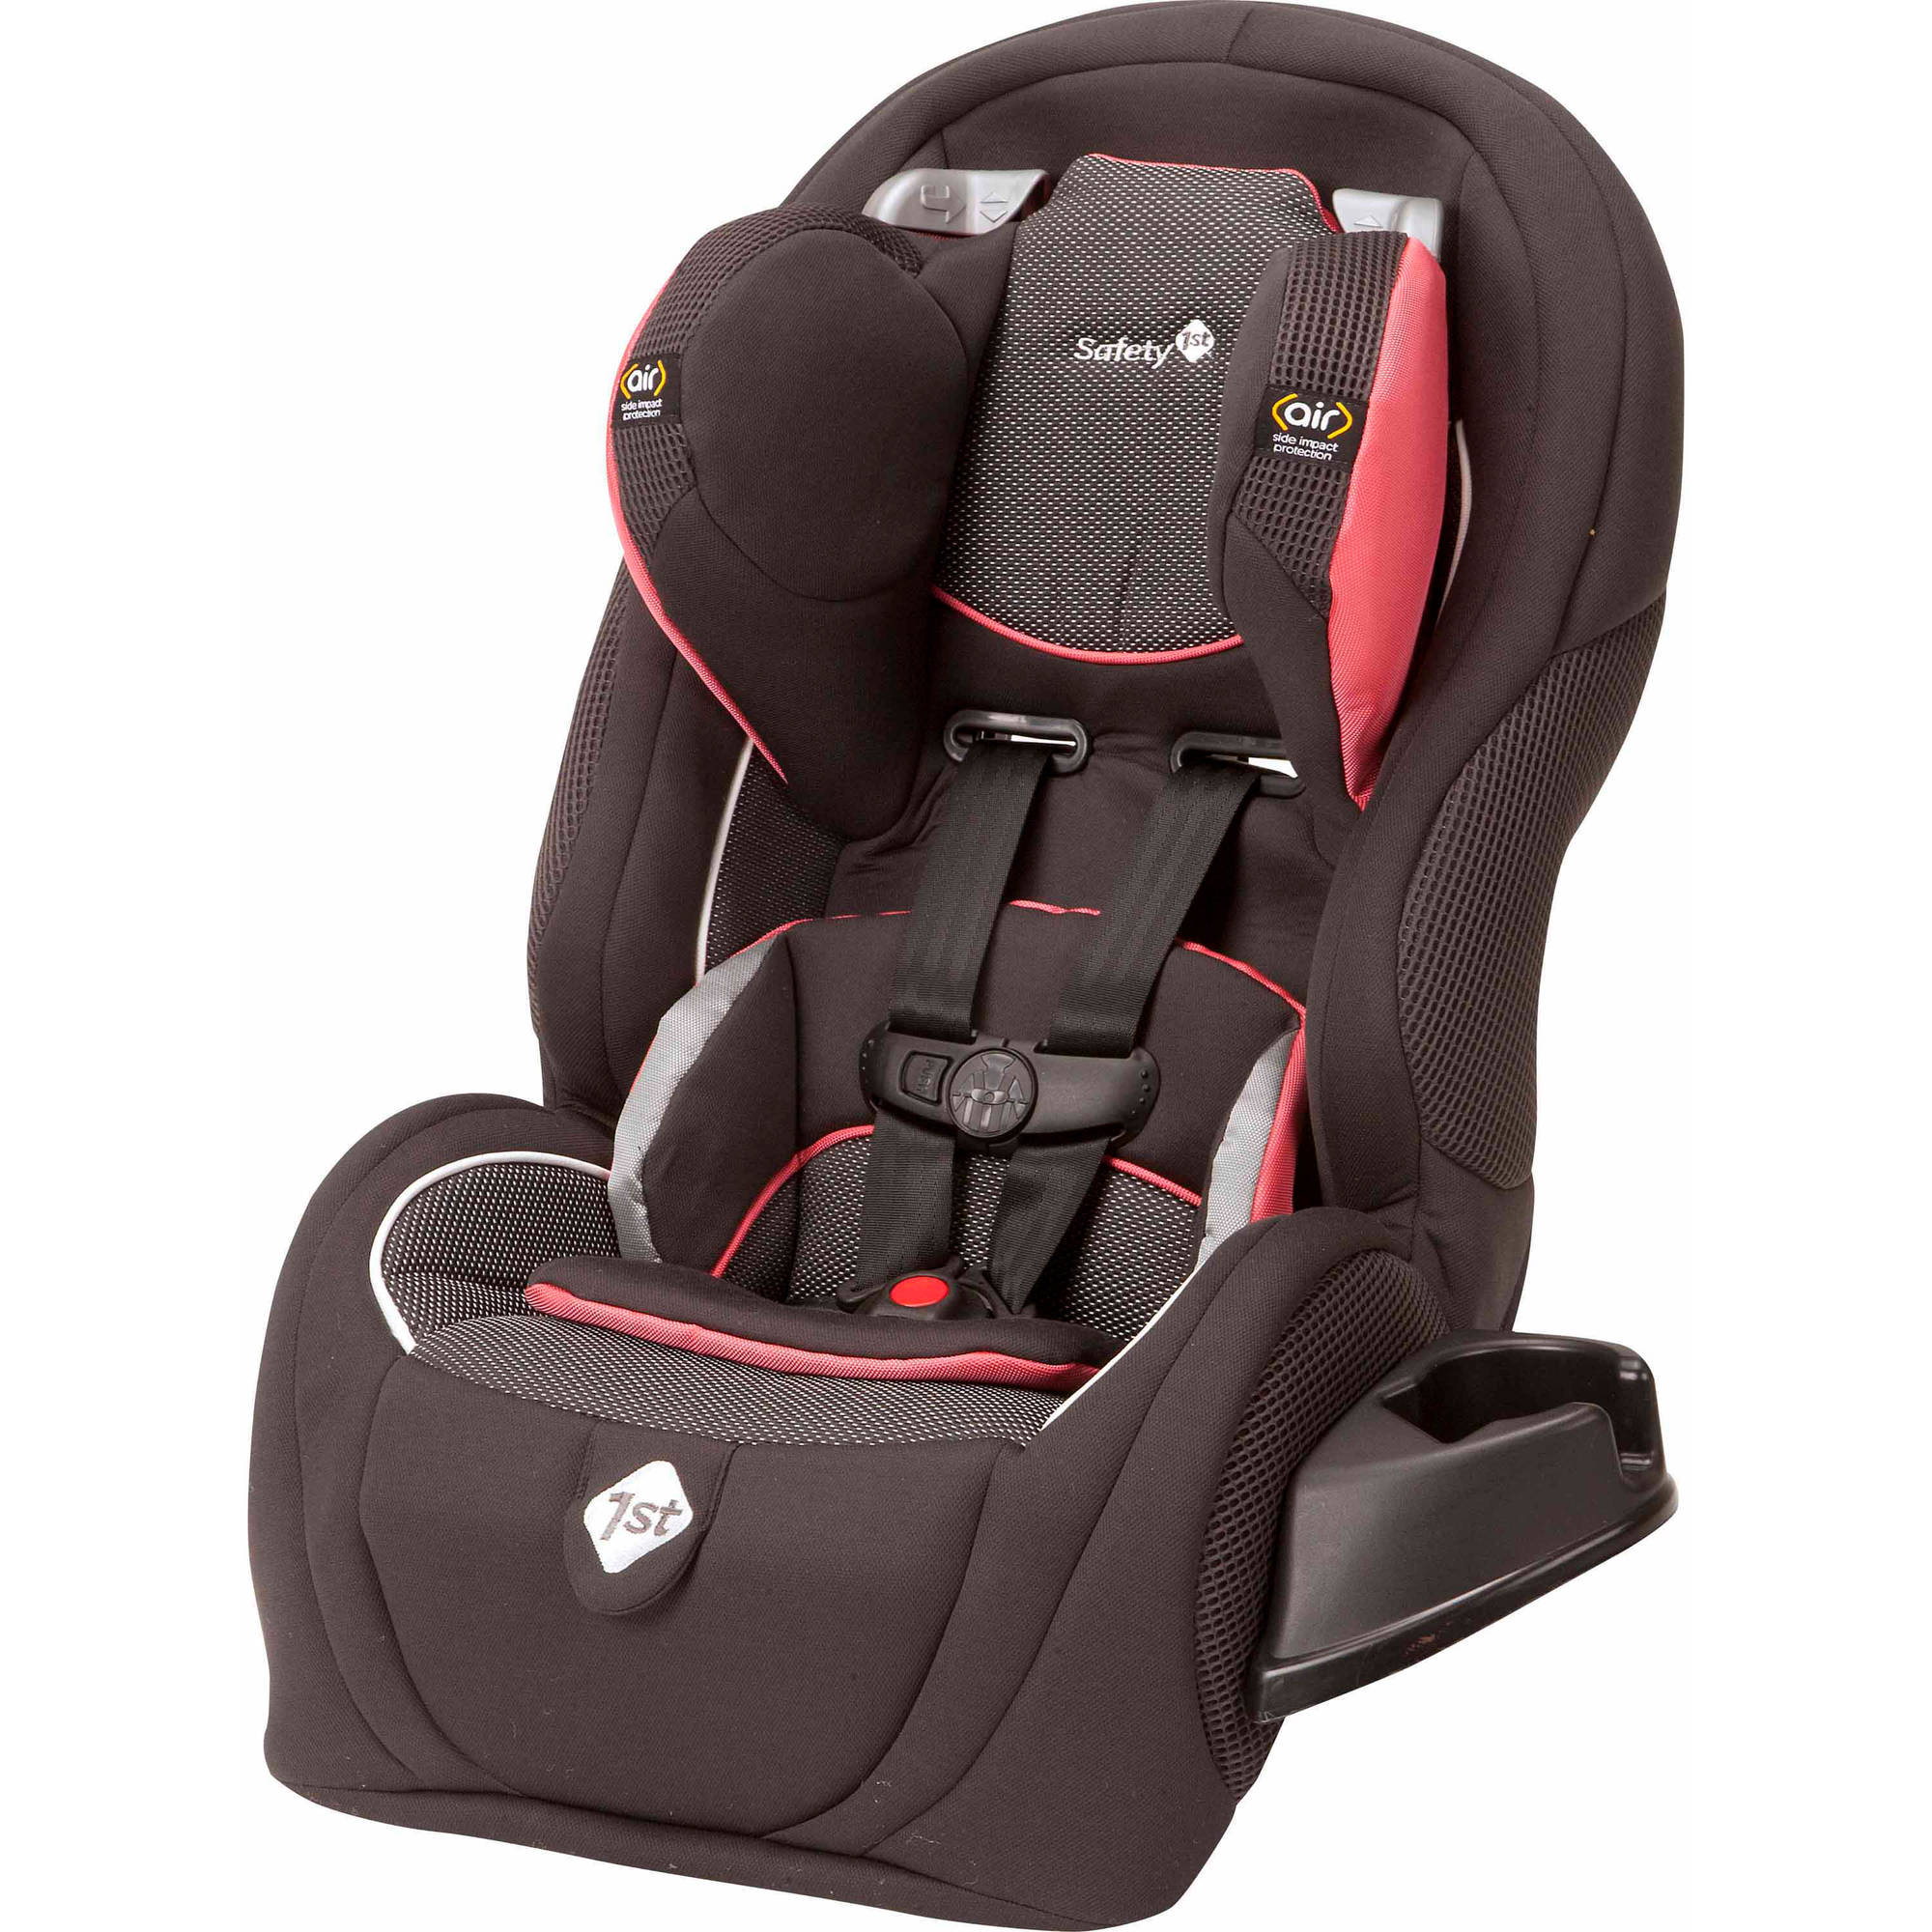 Safety 1st Complete Air 65 Convertible Car Seat, York